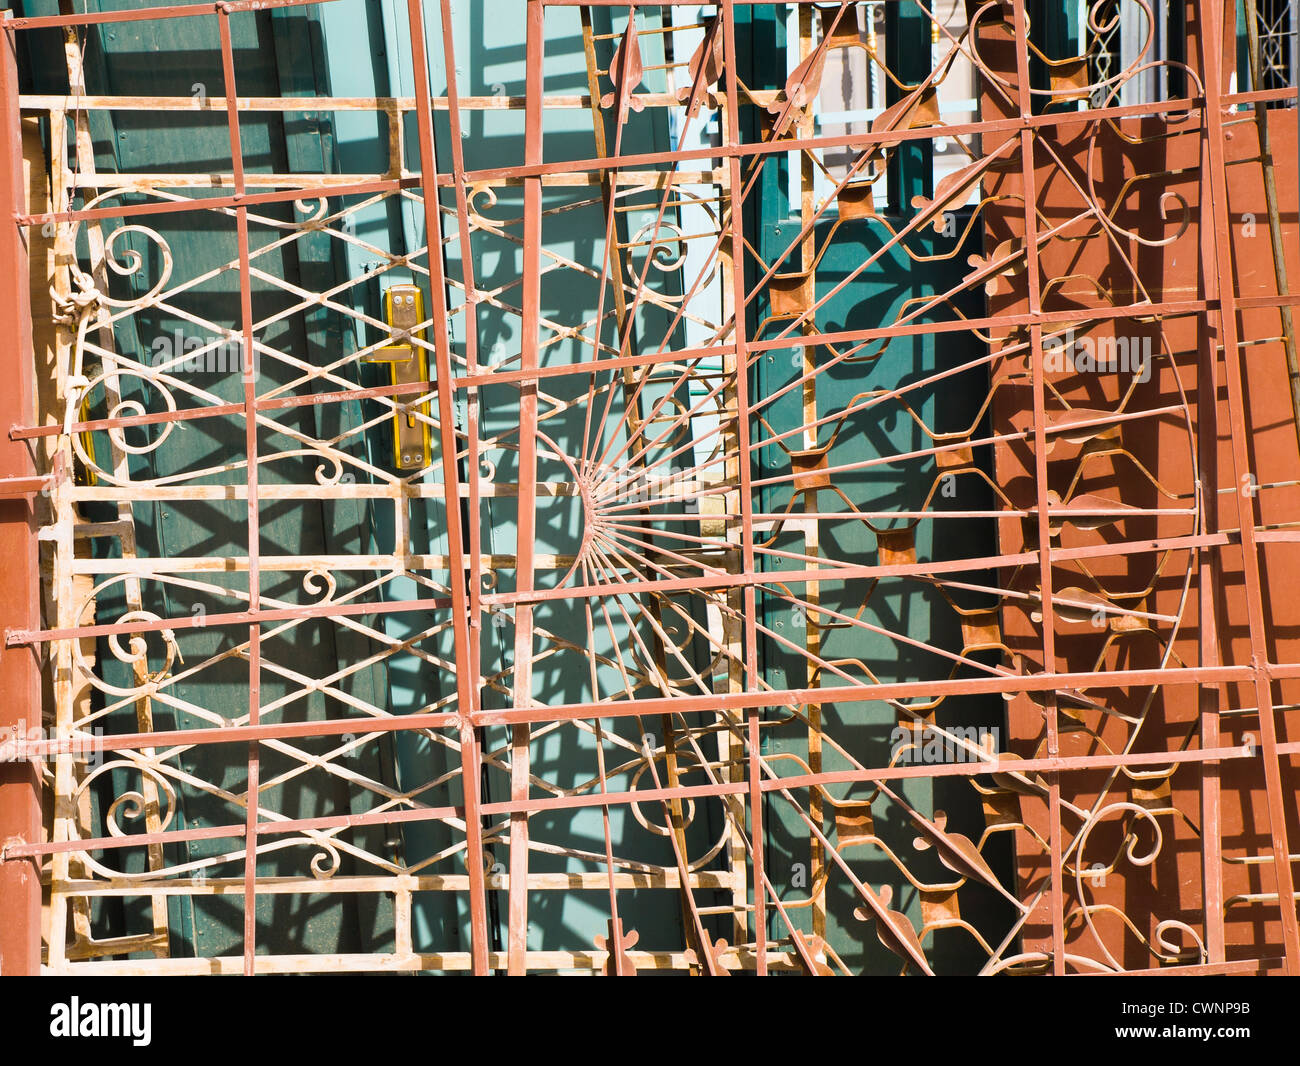 patterns-of-wrought-iron-gates-stored-on